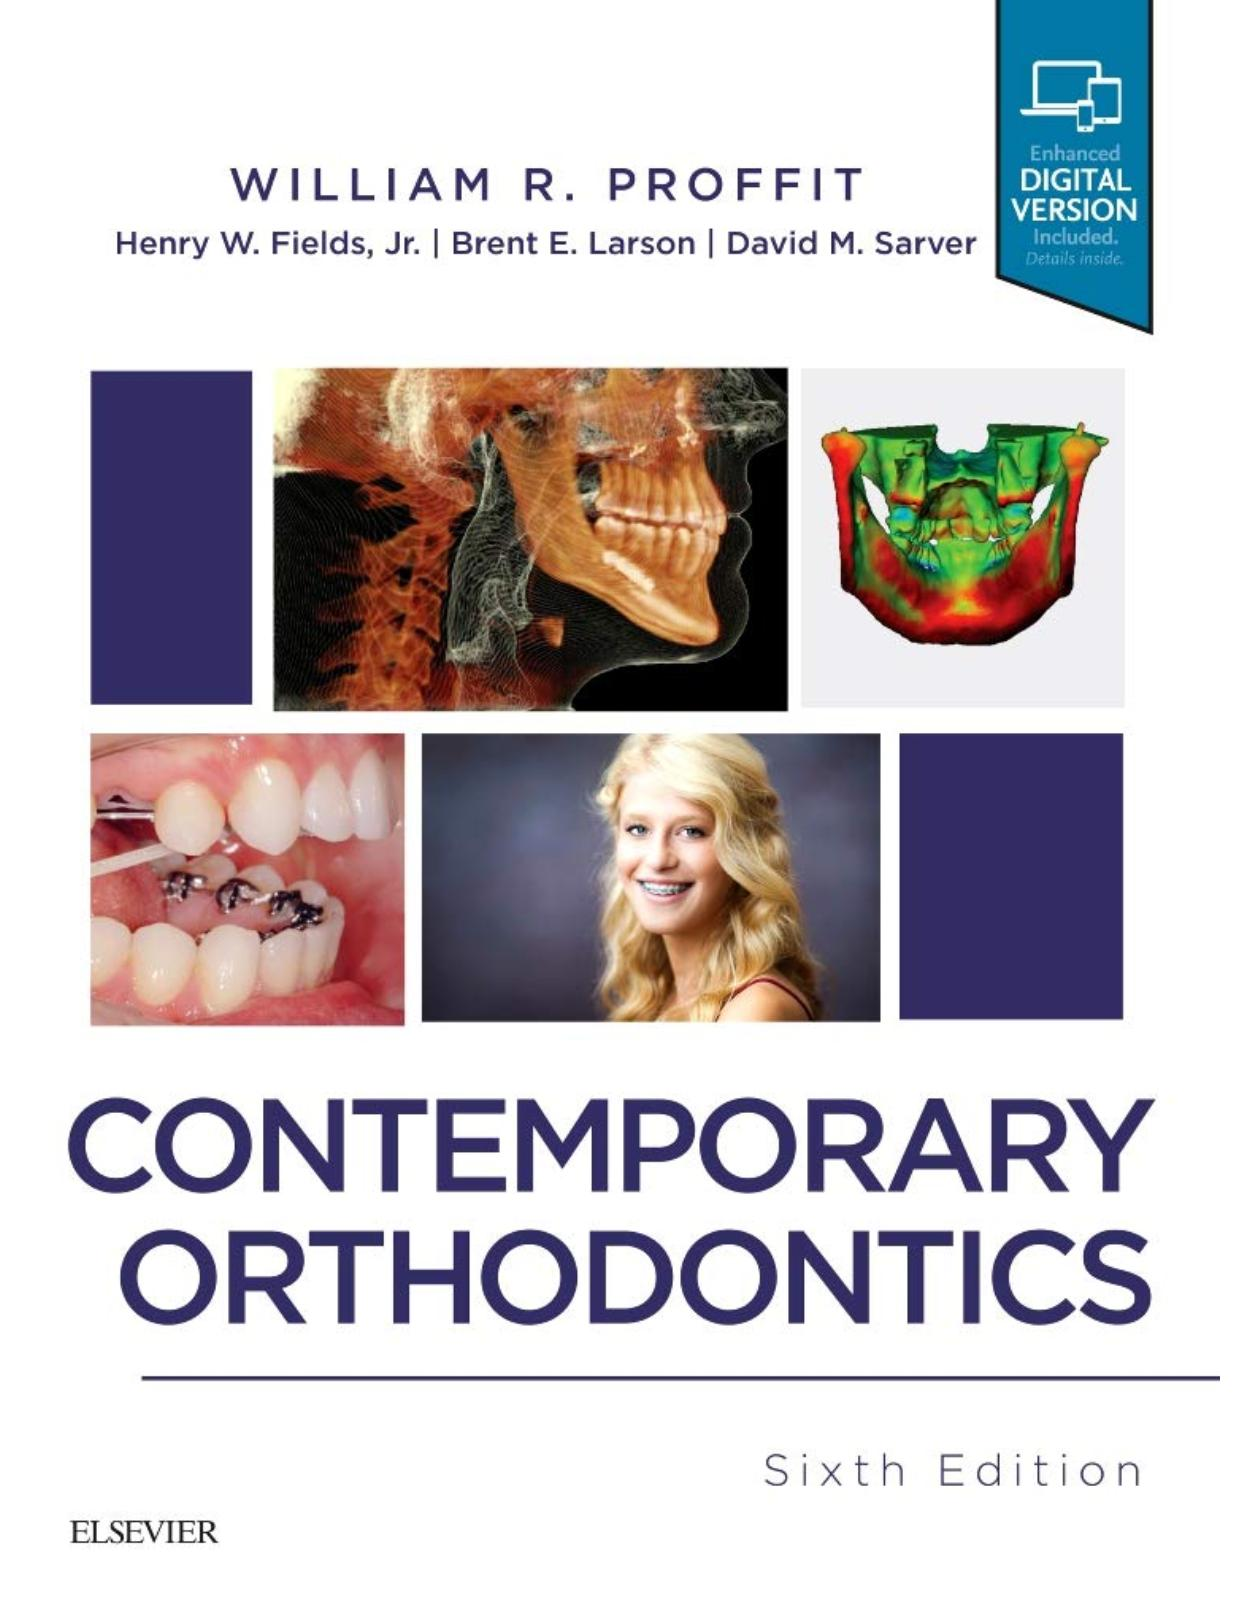 Contemporary Orthodontics, 6e